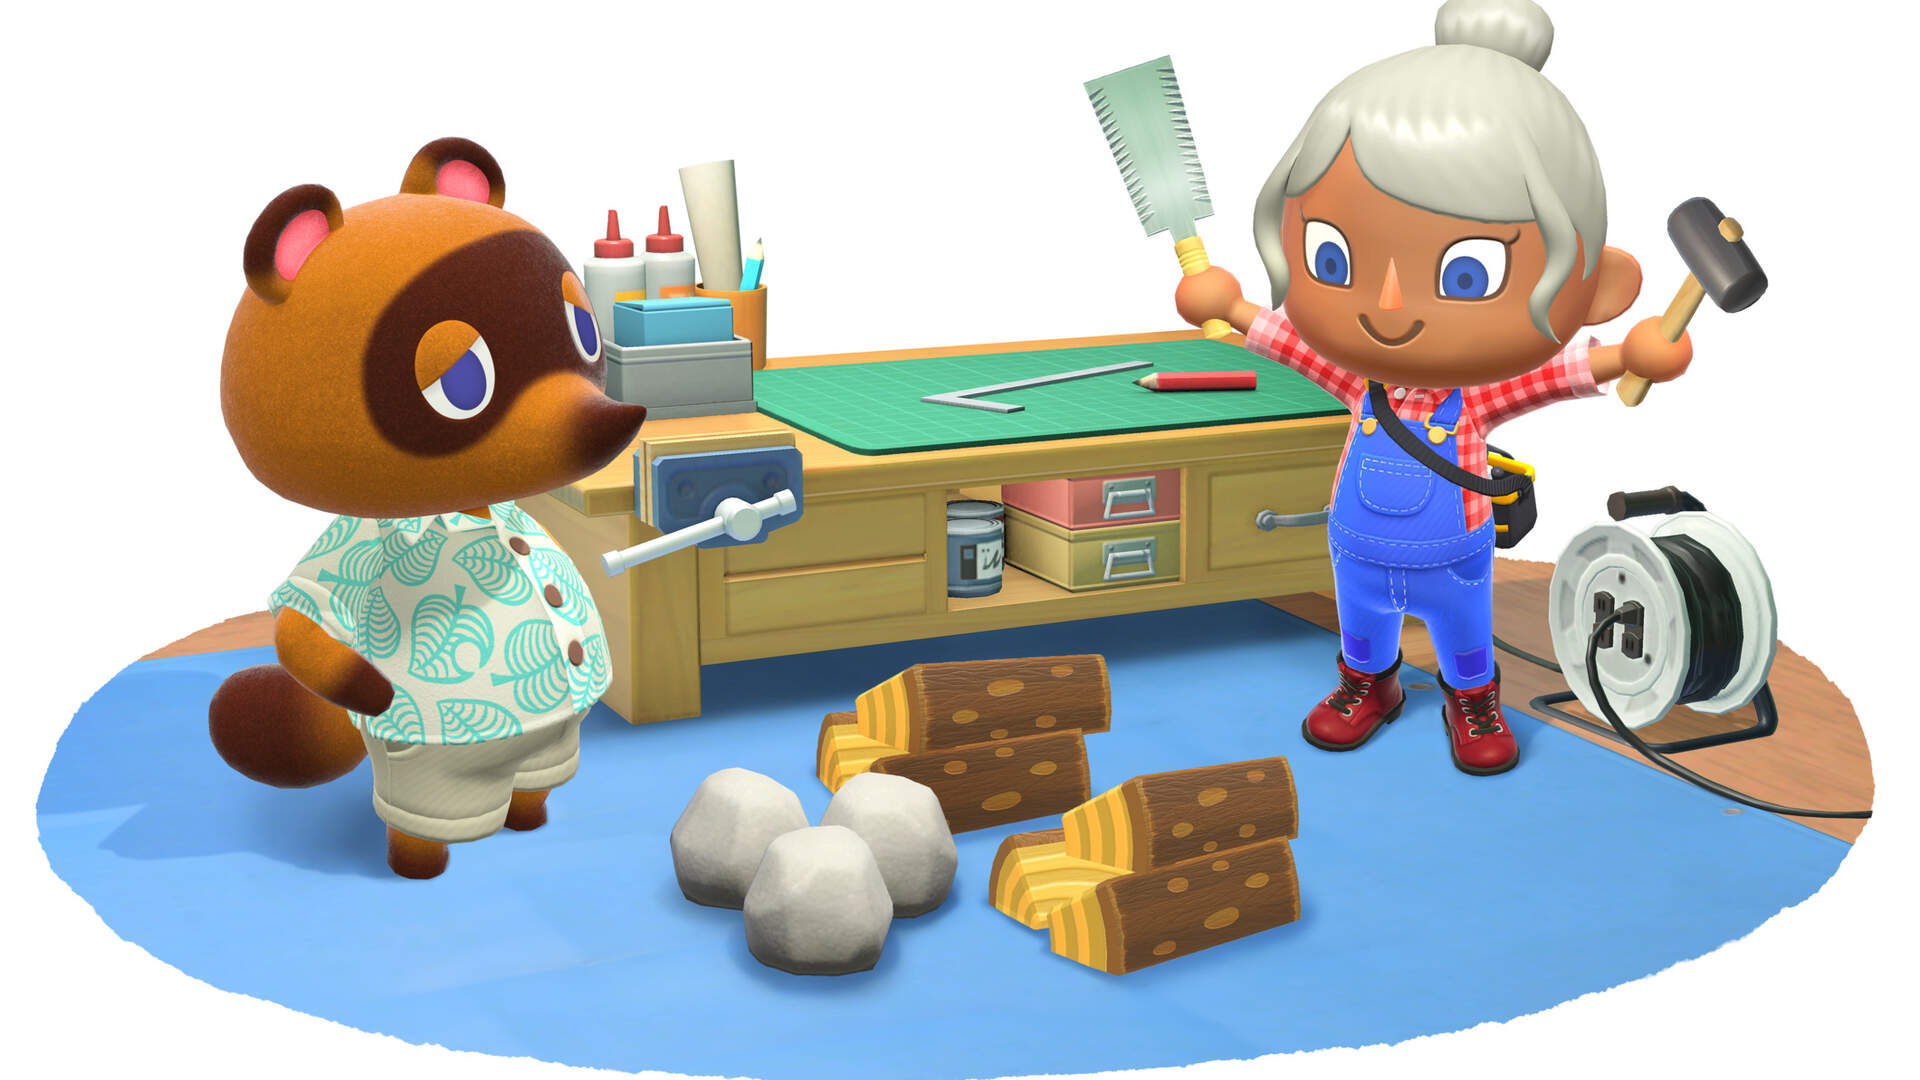 Animal Crossing: New Horizons Fans Made a Fake Nintendo Direct to Share Their Features Wishlist